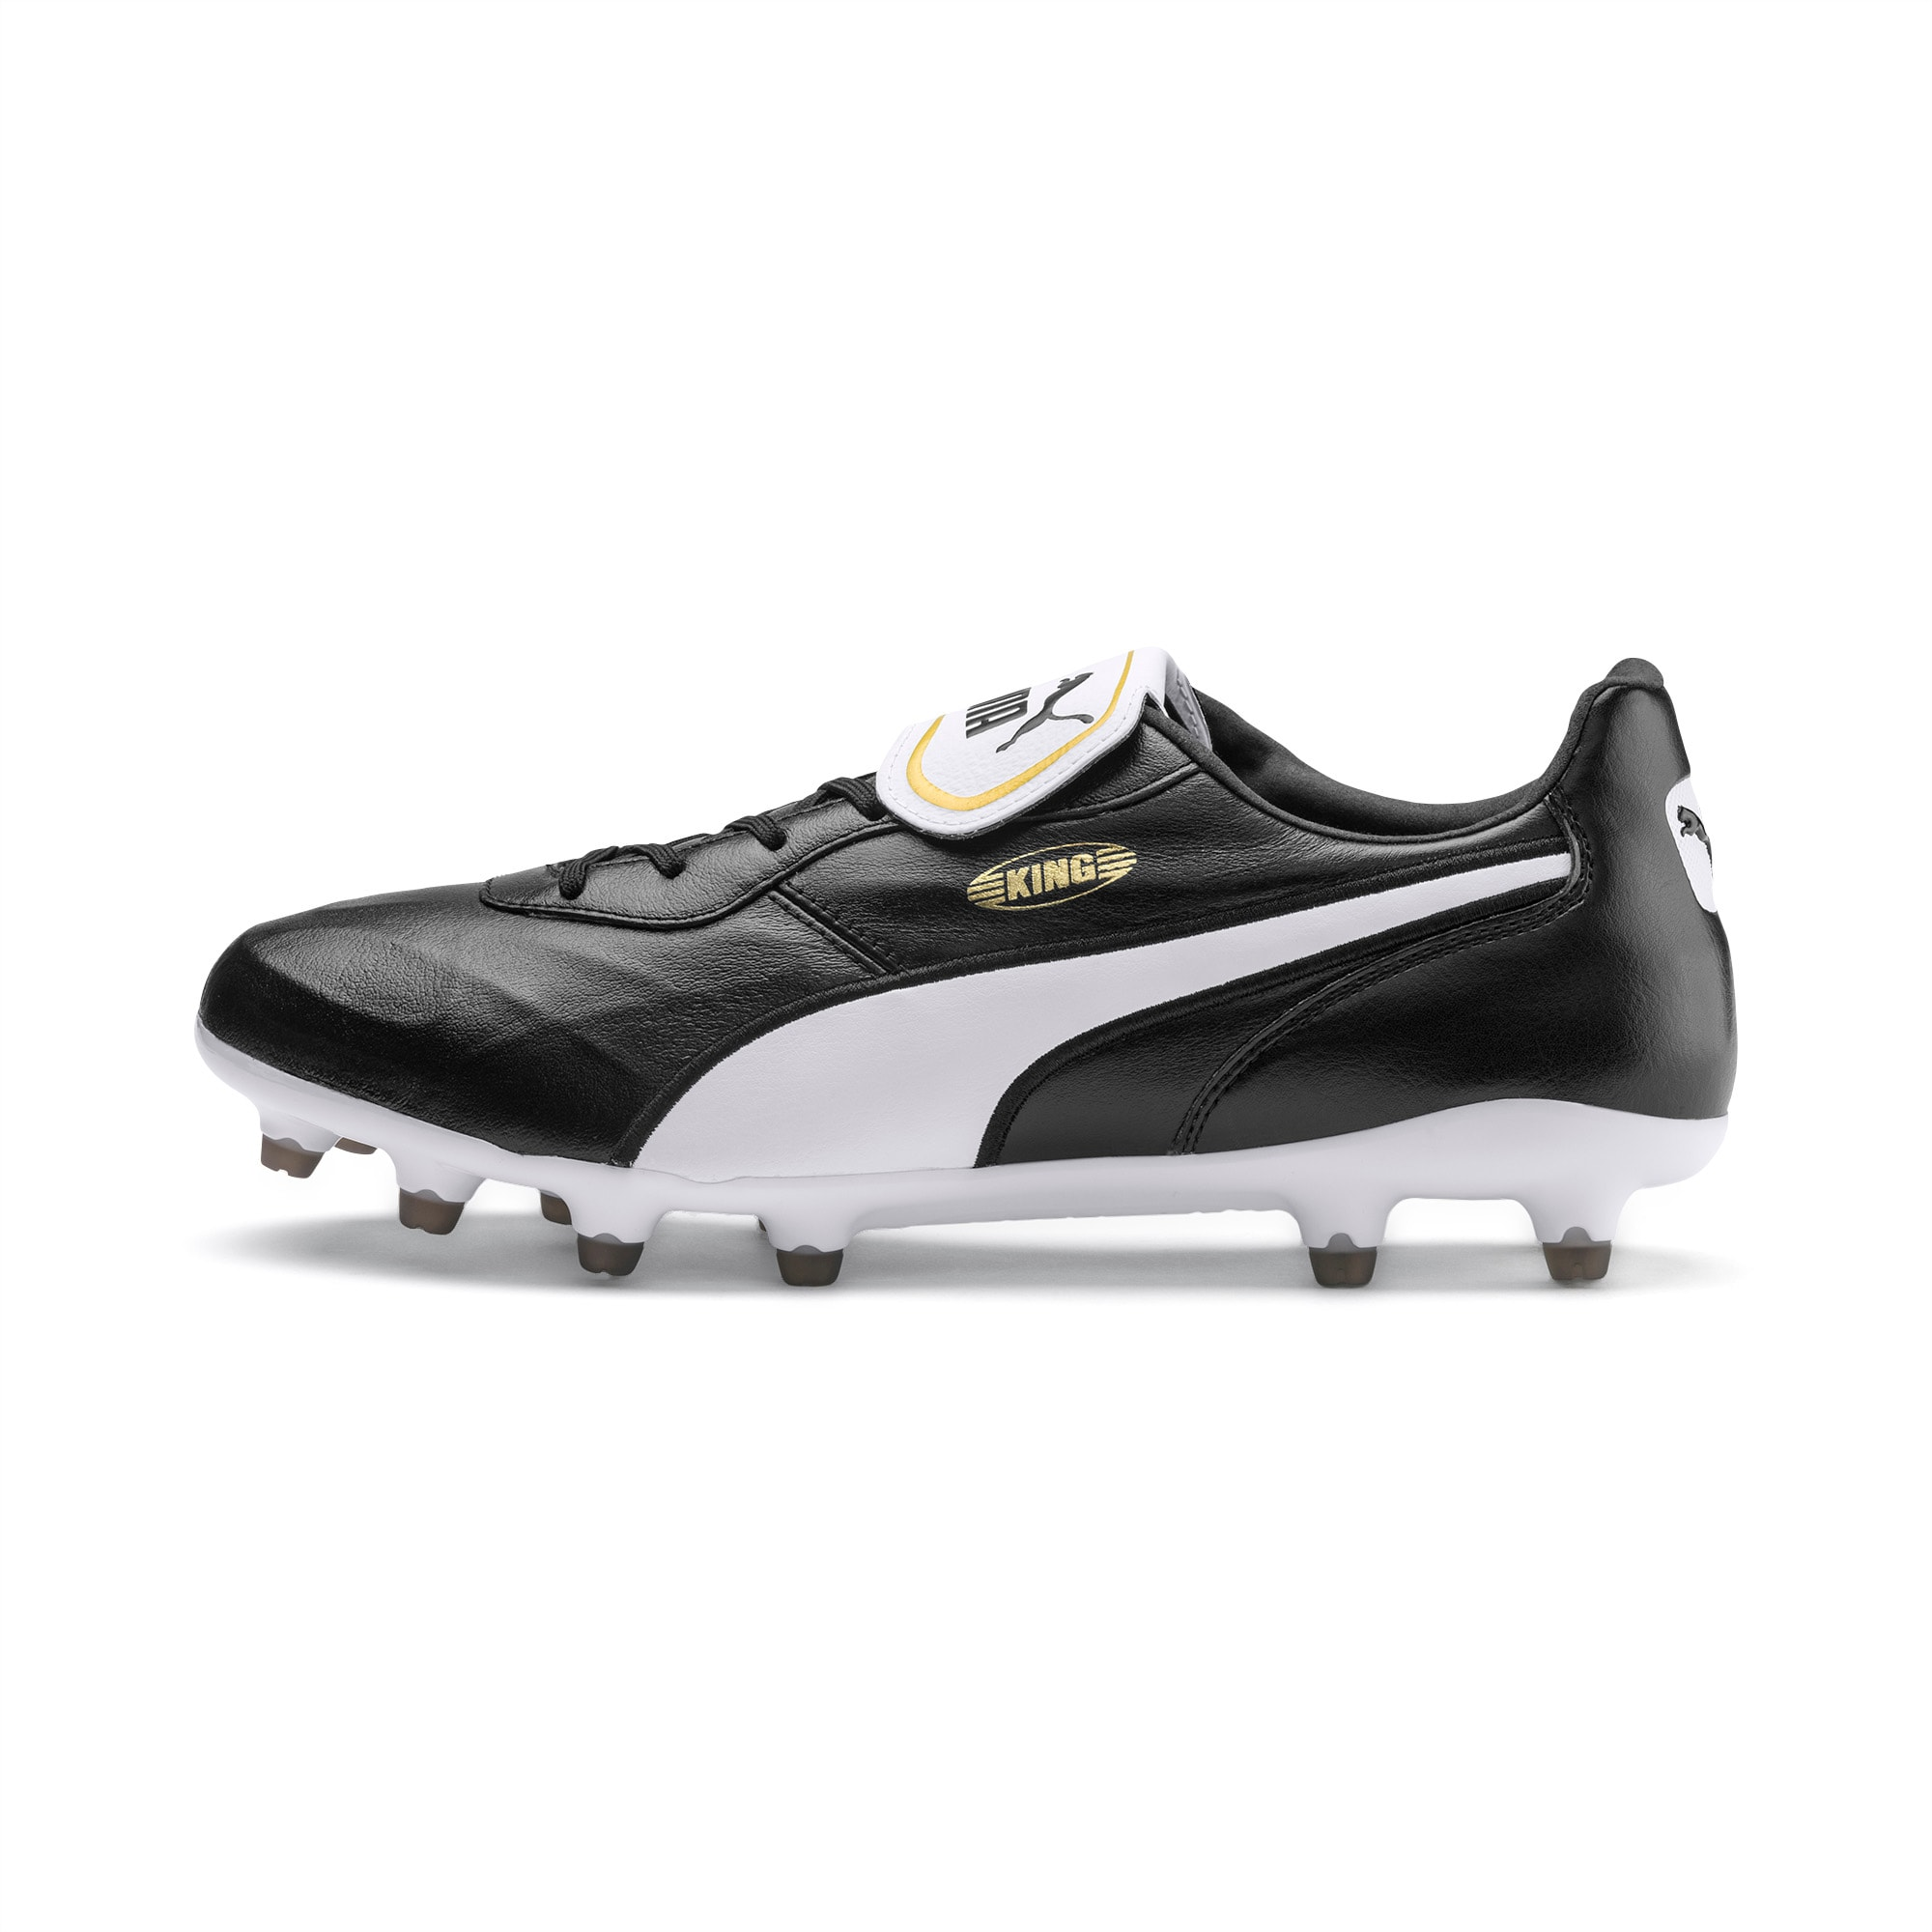 KING Top FG Football Boots